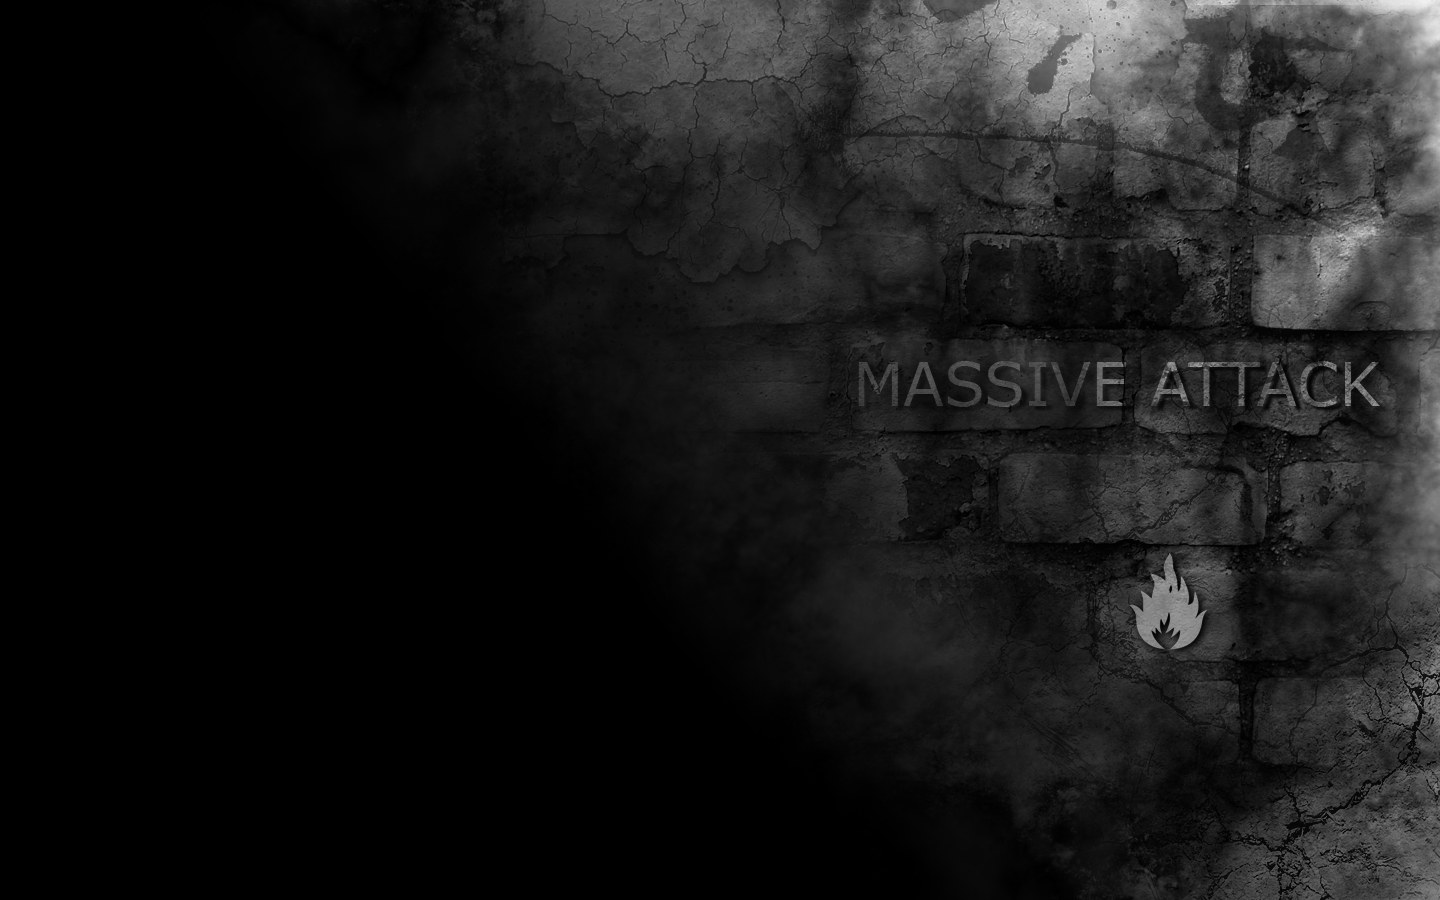 Massive Attack 4-Version 1 by curranleeds on DeviantArt